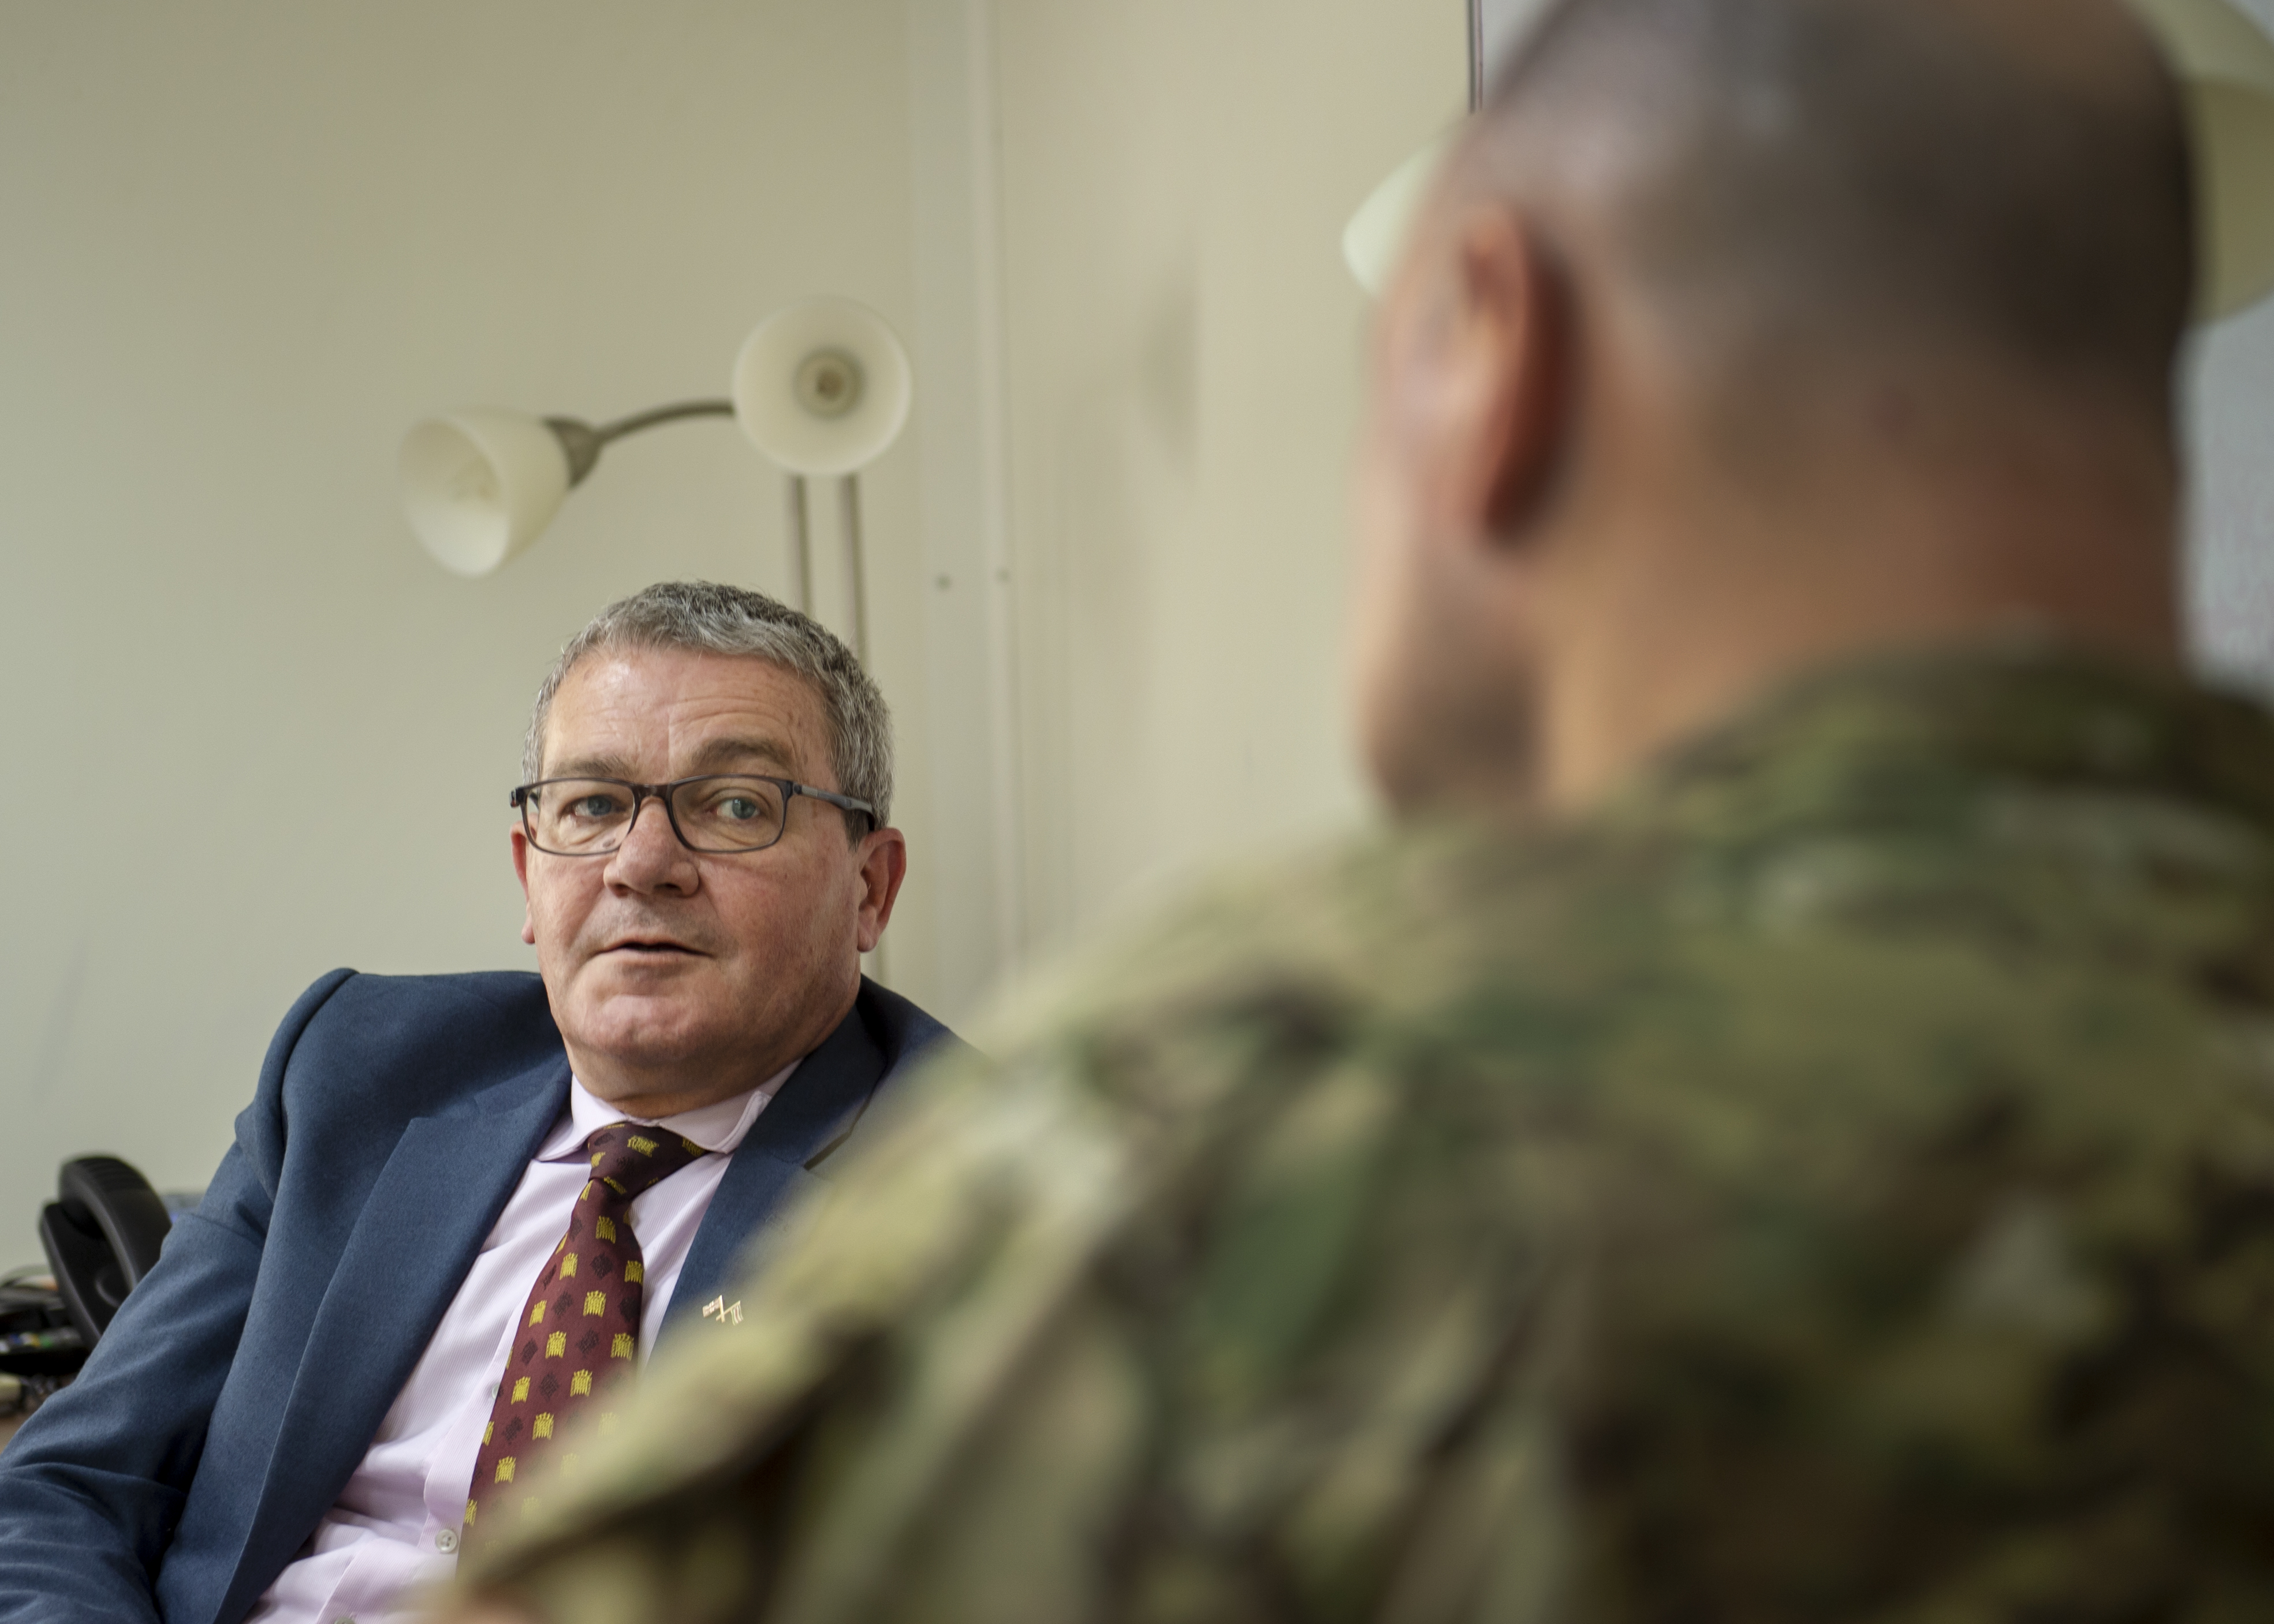 U.S. Air Force Brig. Gen. James R. Kriesel, deputy commanding general of Combined Joint Task Force-Horn of Africa (CJTF-HOA), meets with Charles Moore, deputy head of mission assigned to the British Embassy in South Sudan, in Juba, South Sudan, Aug. 15, 2019. Kriesel and Moore discussed the capabilities CJTF-HOA can bring to the British Embassy in South Sudan. (U.S. Air Force Photo by Senior Airman Codie Trimble)